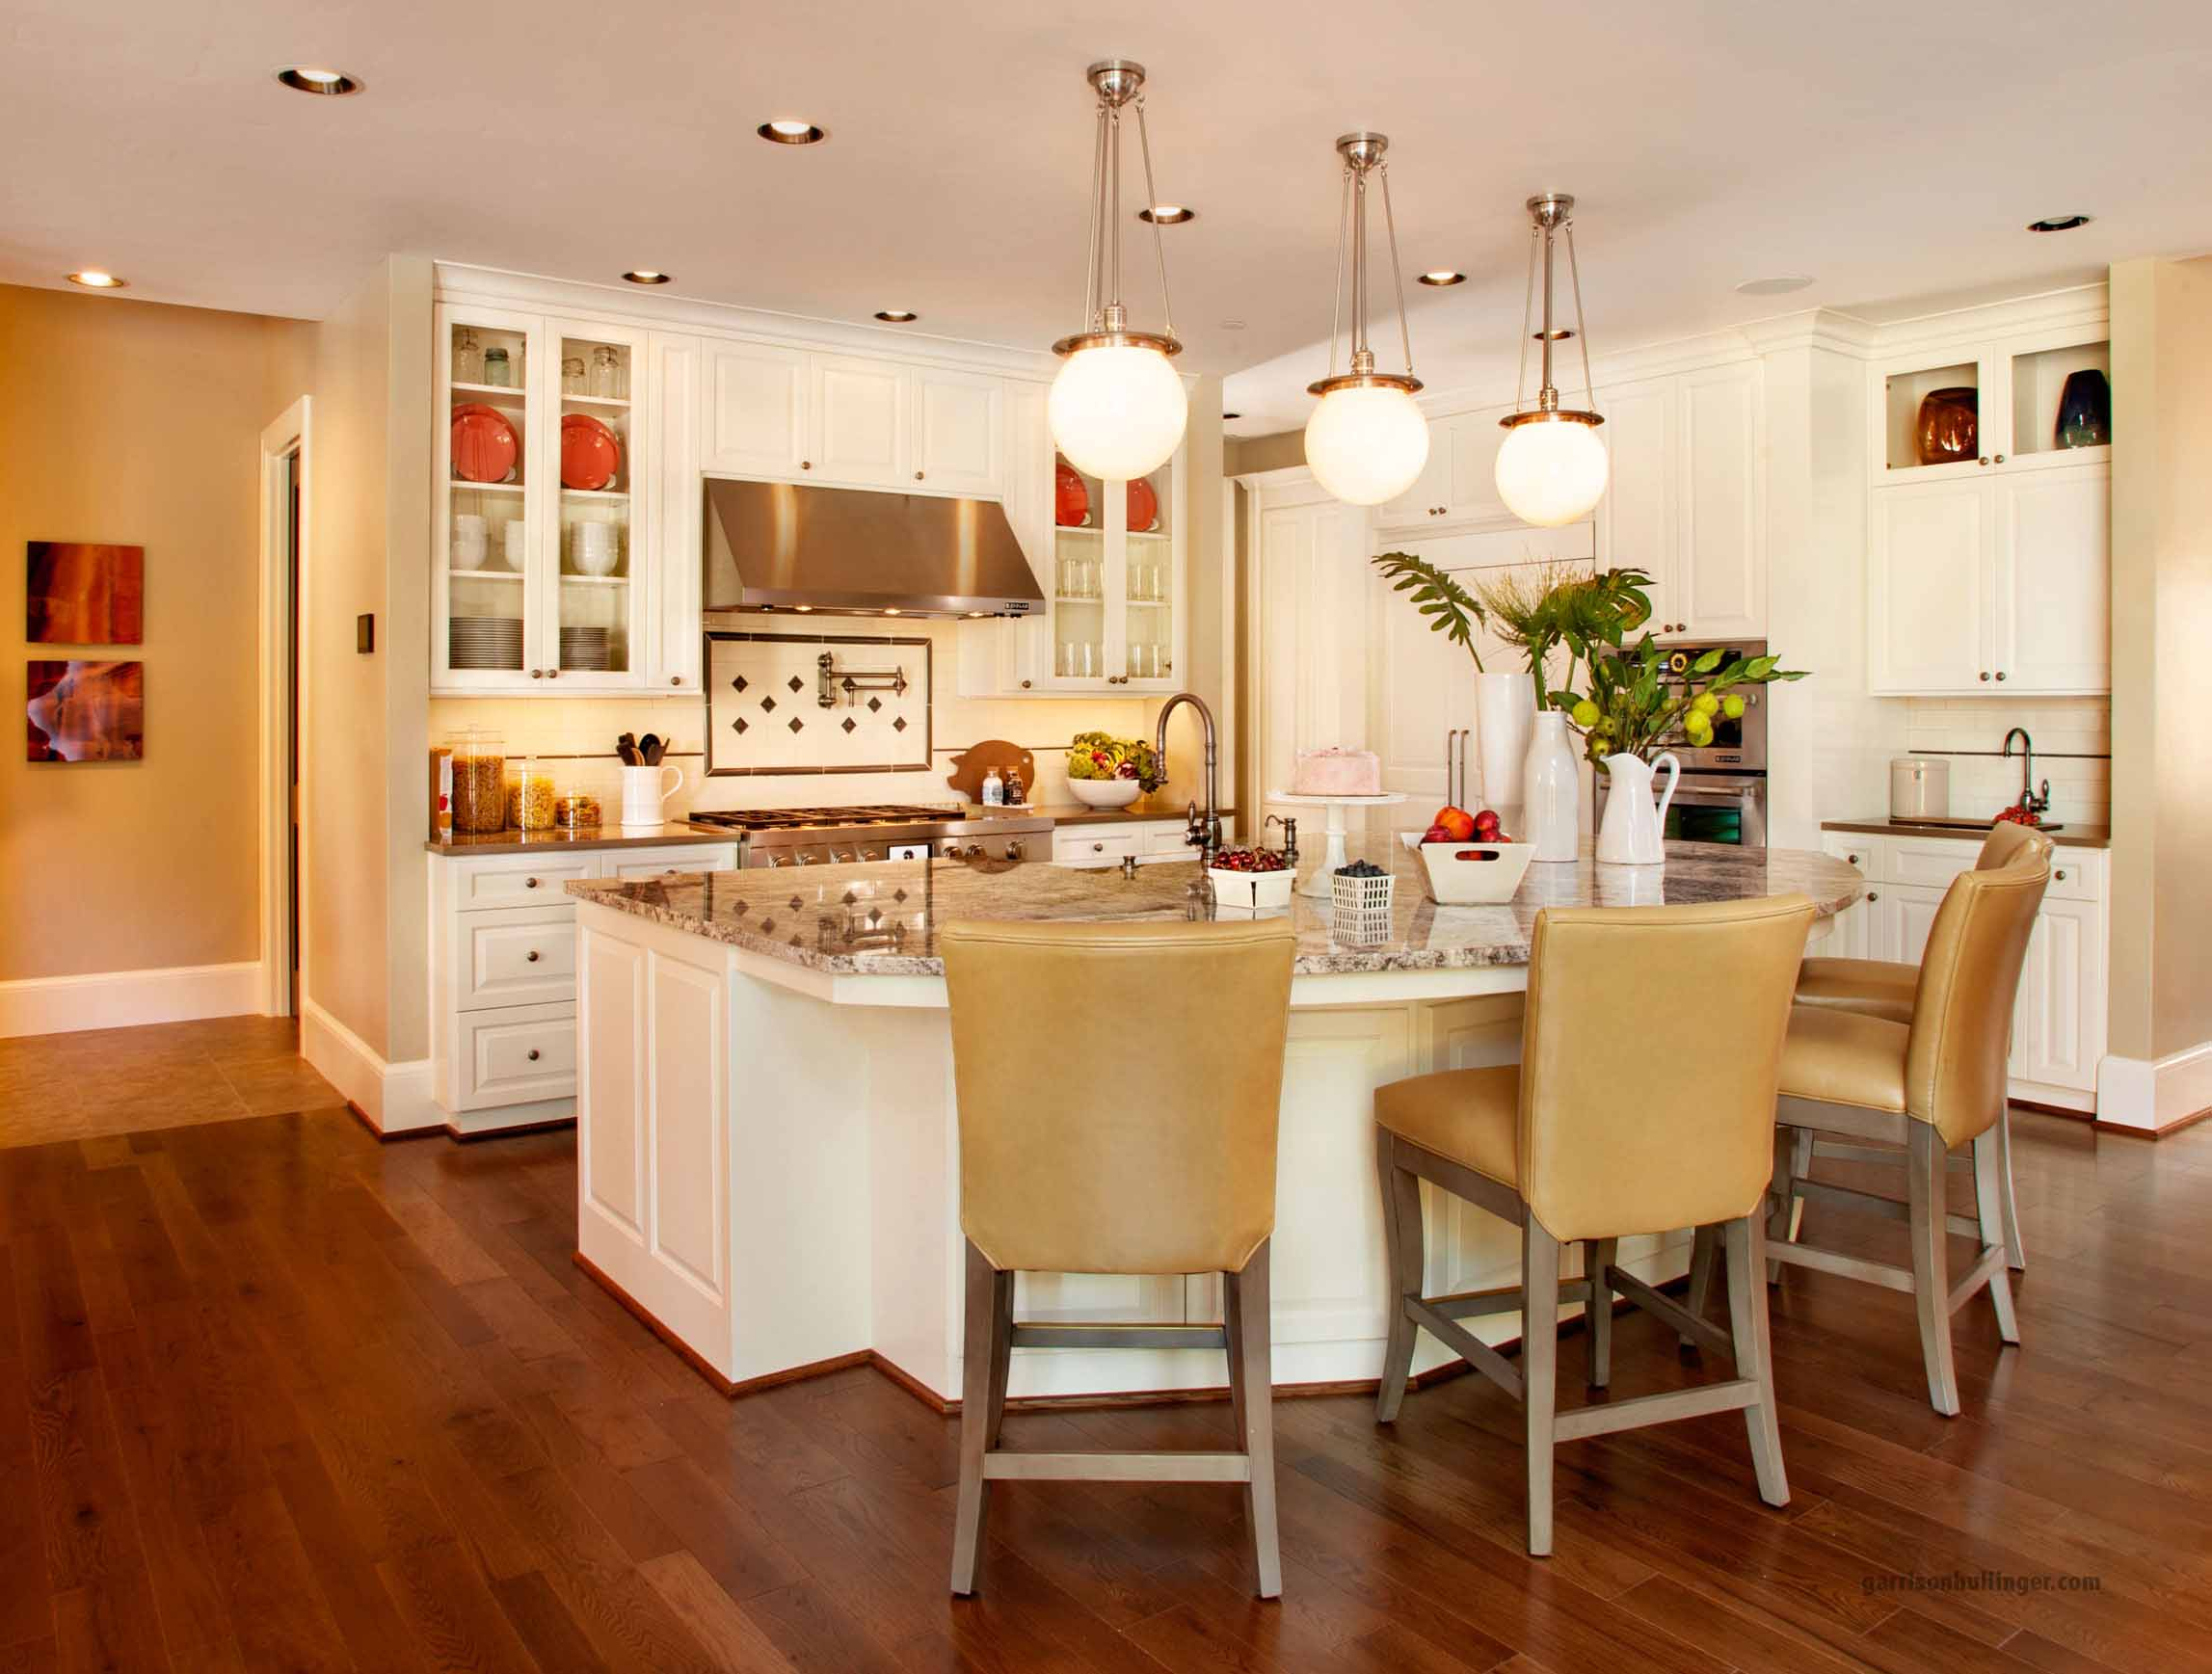 Kitchen Island inspiration, Kitchen countertop surfaces, best kitchen counter materials